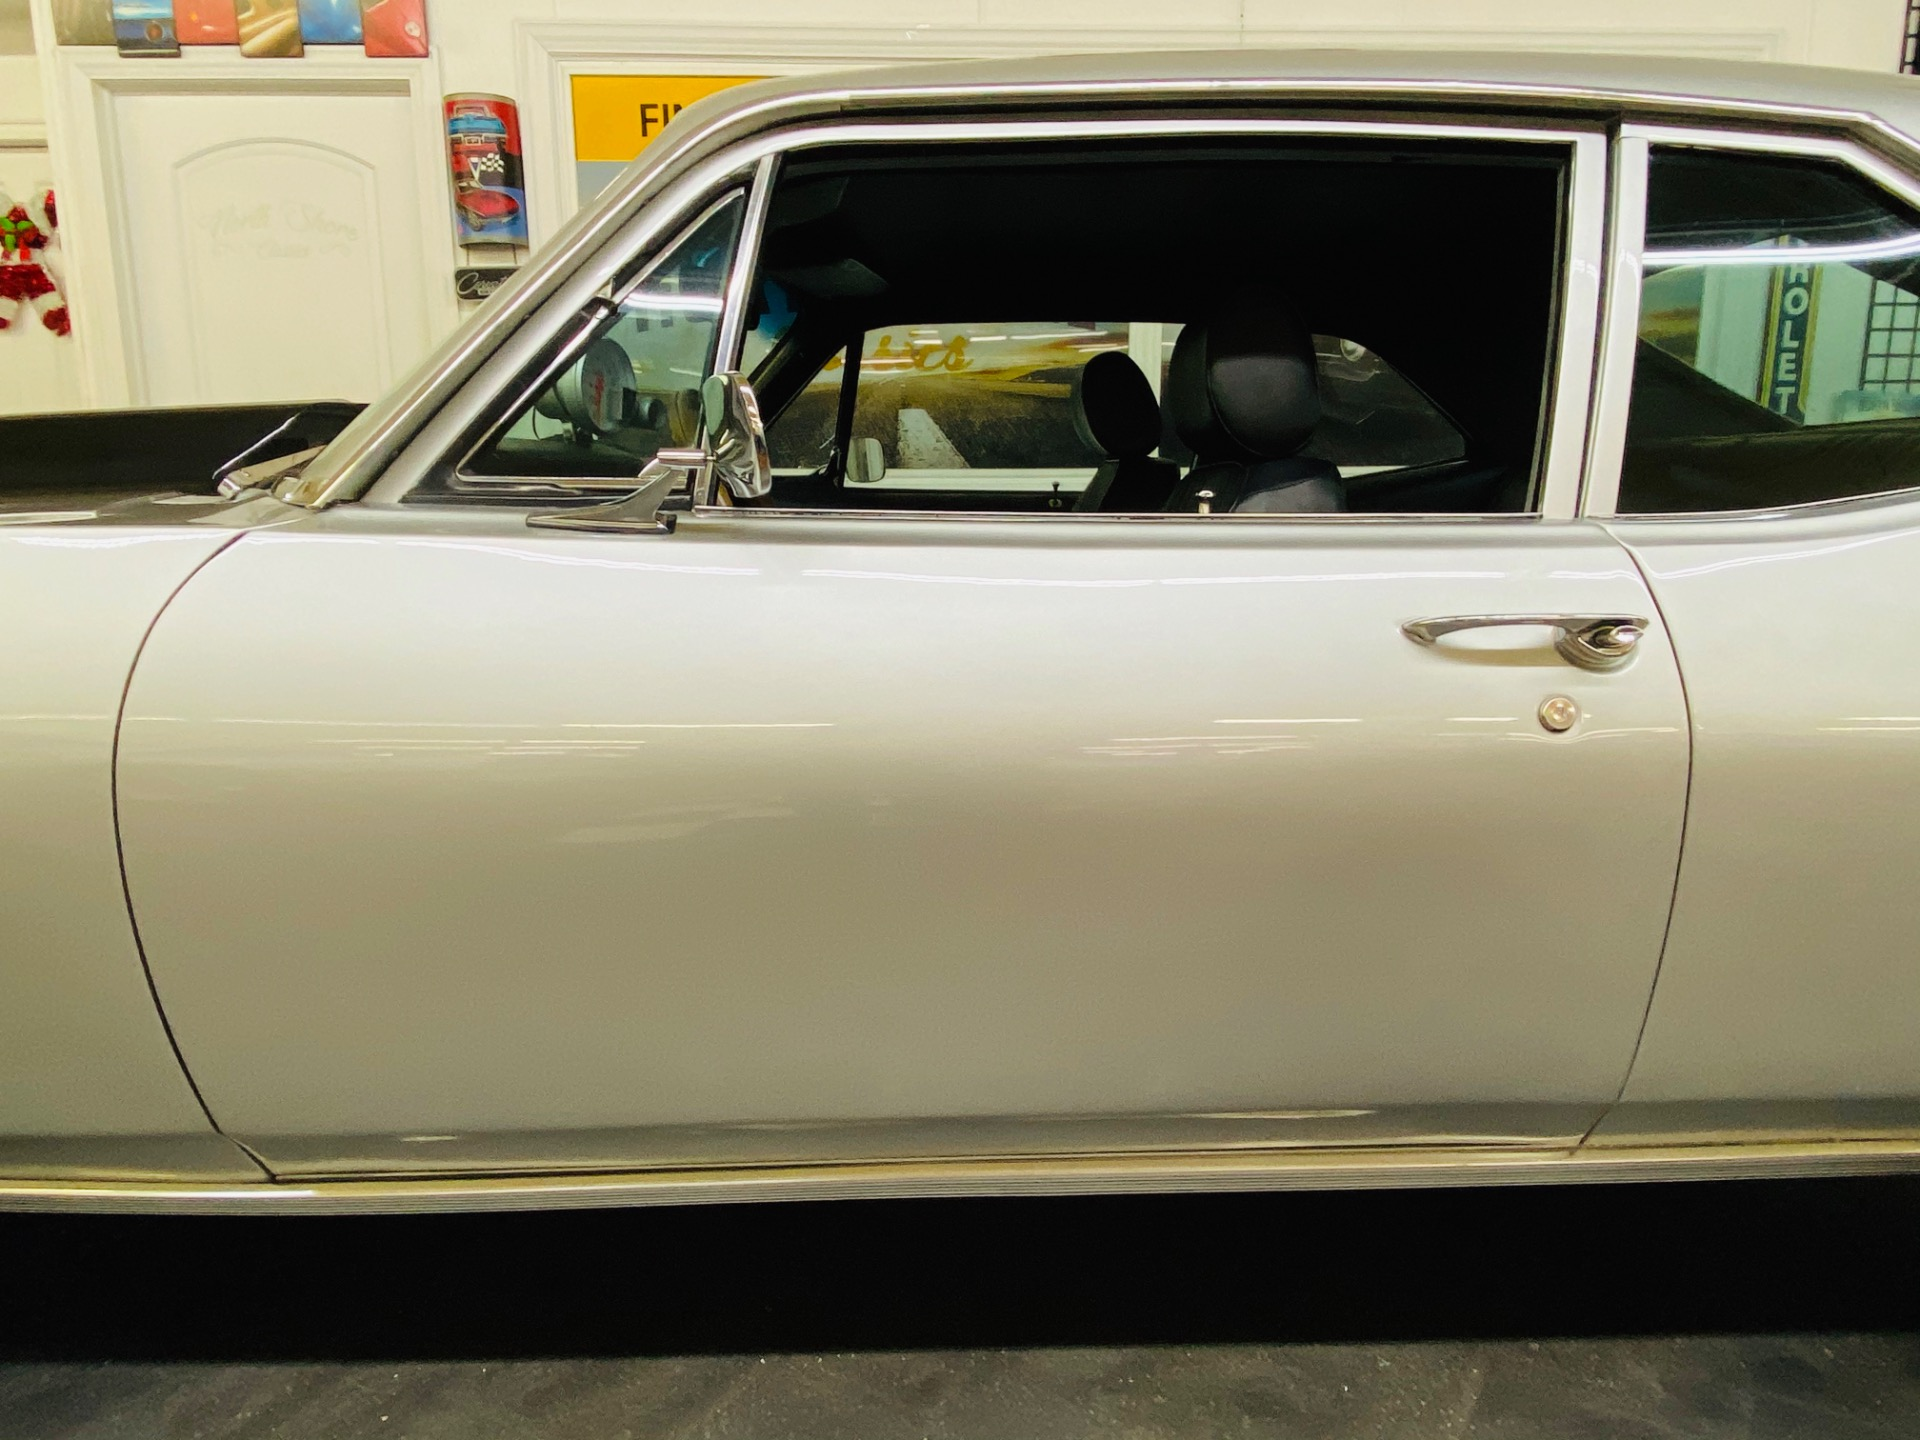 Used 1970 Chevrolet Nova - 454 BIG BLOCK - 4 SPEED MANUAL - VERY CLEAN - | Mundelein, IL